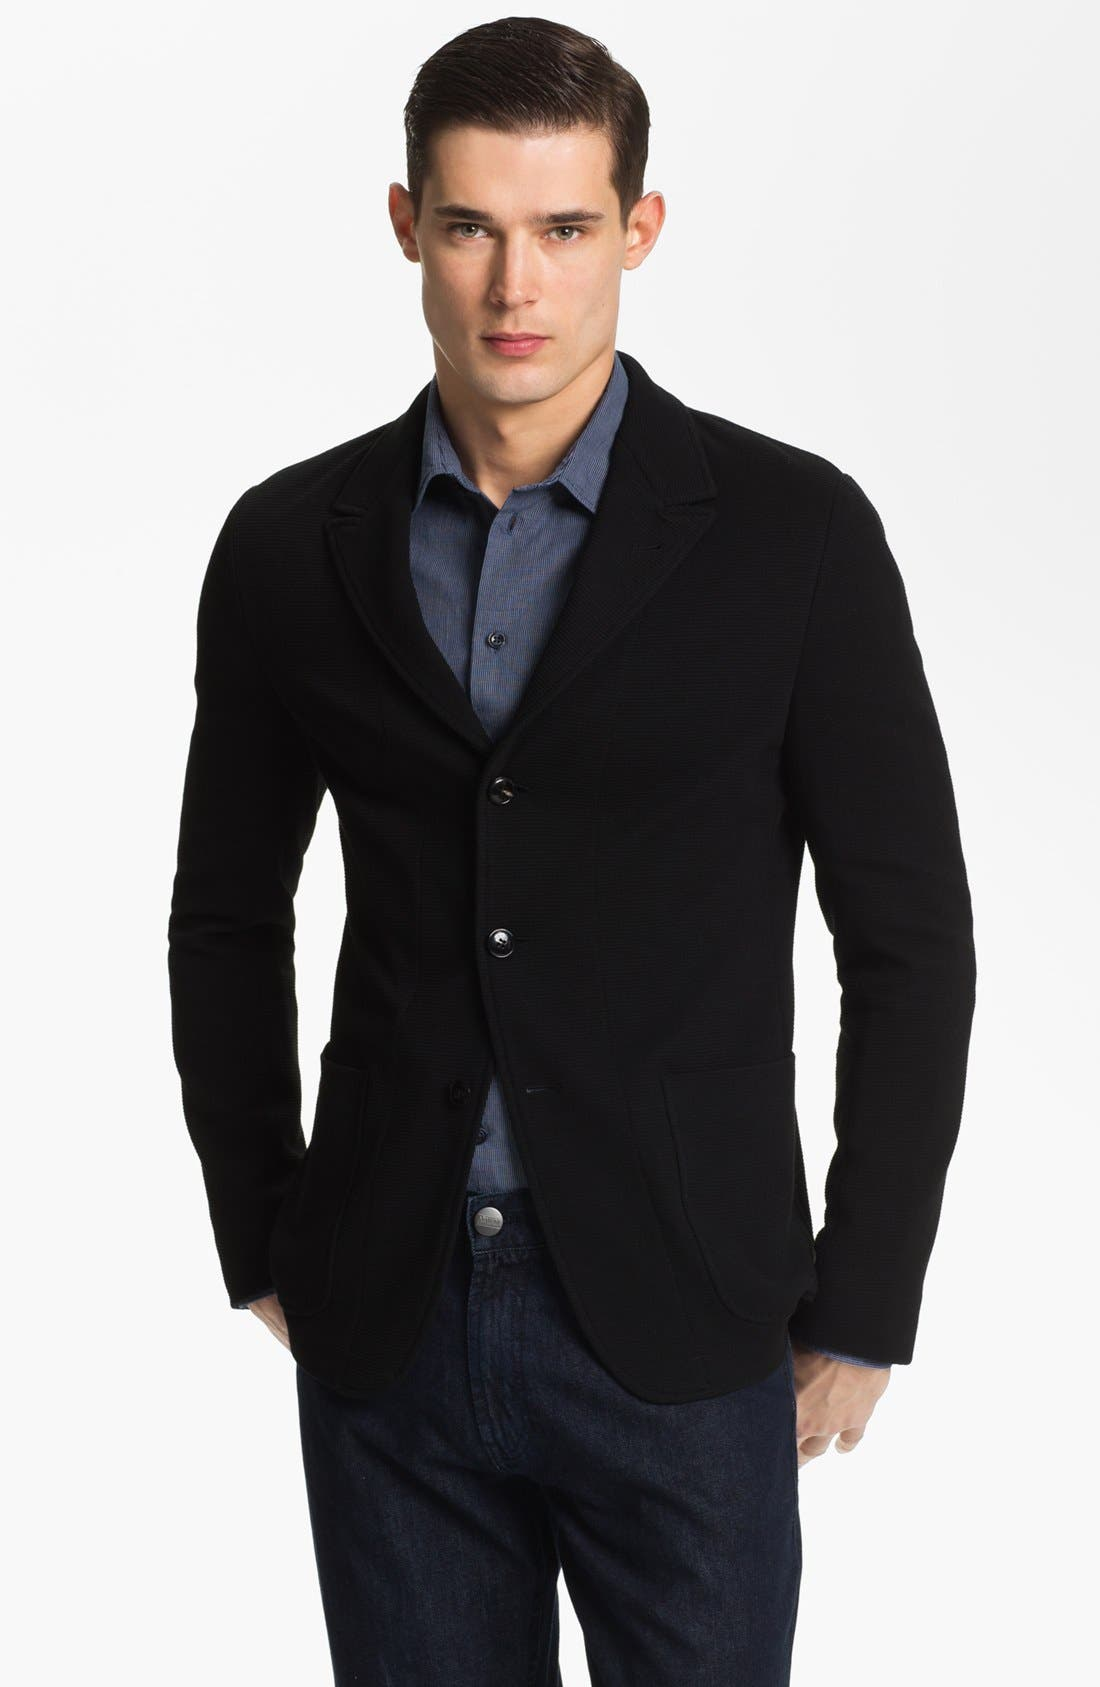 Alternate Image 1 Selected - Armani Collezioni Three Button Knit Sweater Jacket